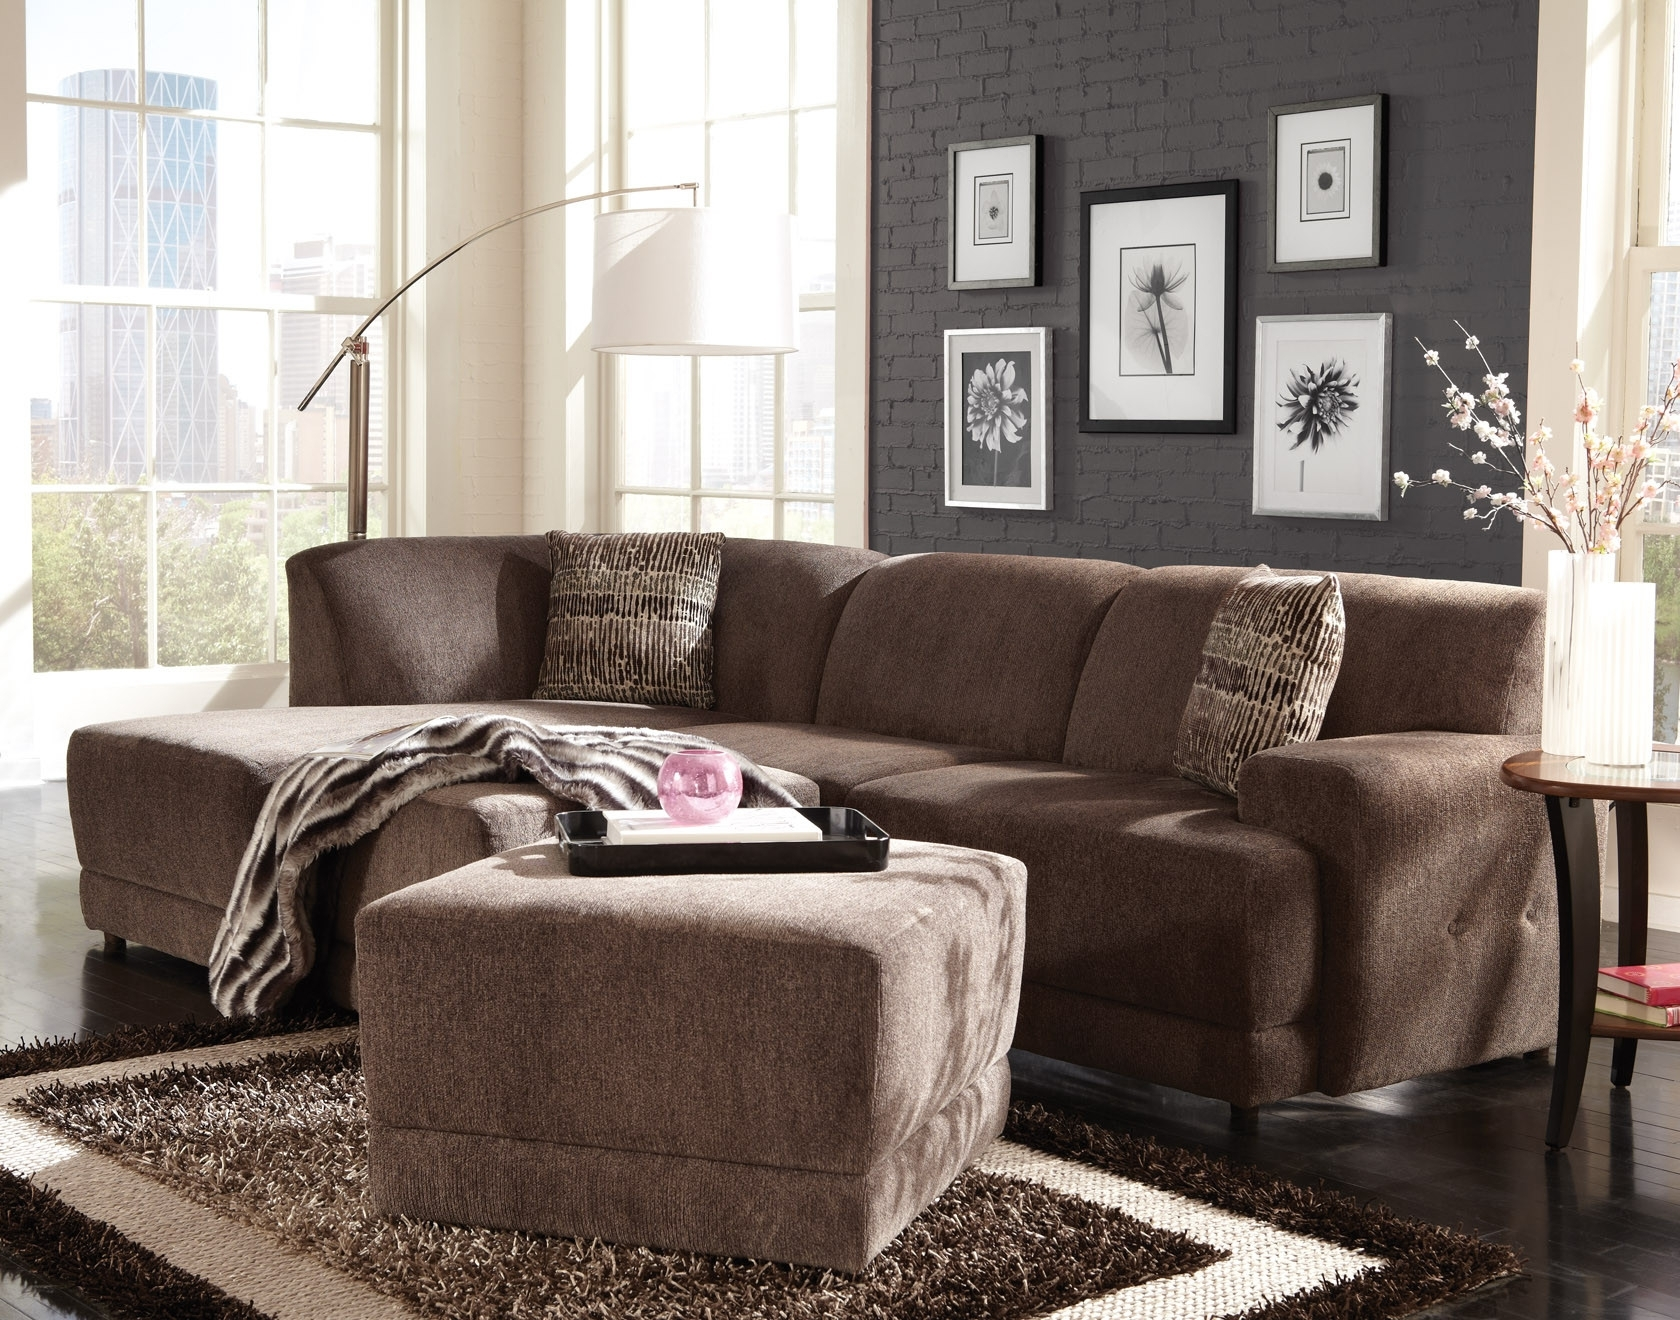 American Furniture Warehouse Greensboro Nc Luxury Cool American For Sectional Sofas In Greensboro Nc (Image 2 of 10)